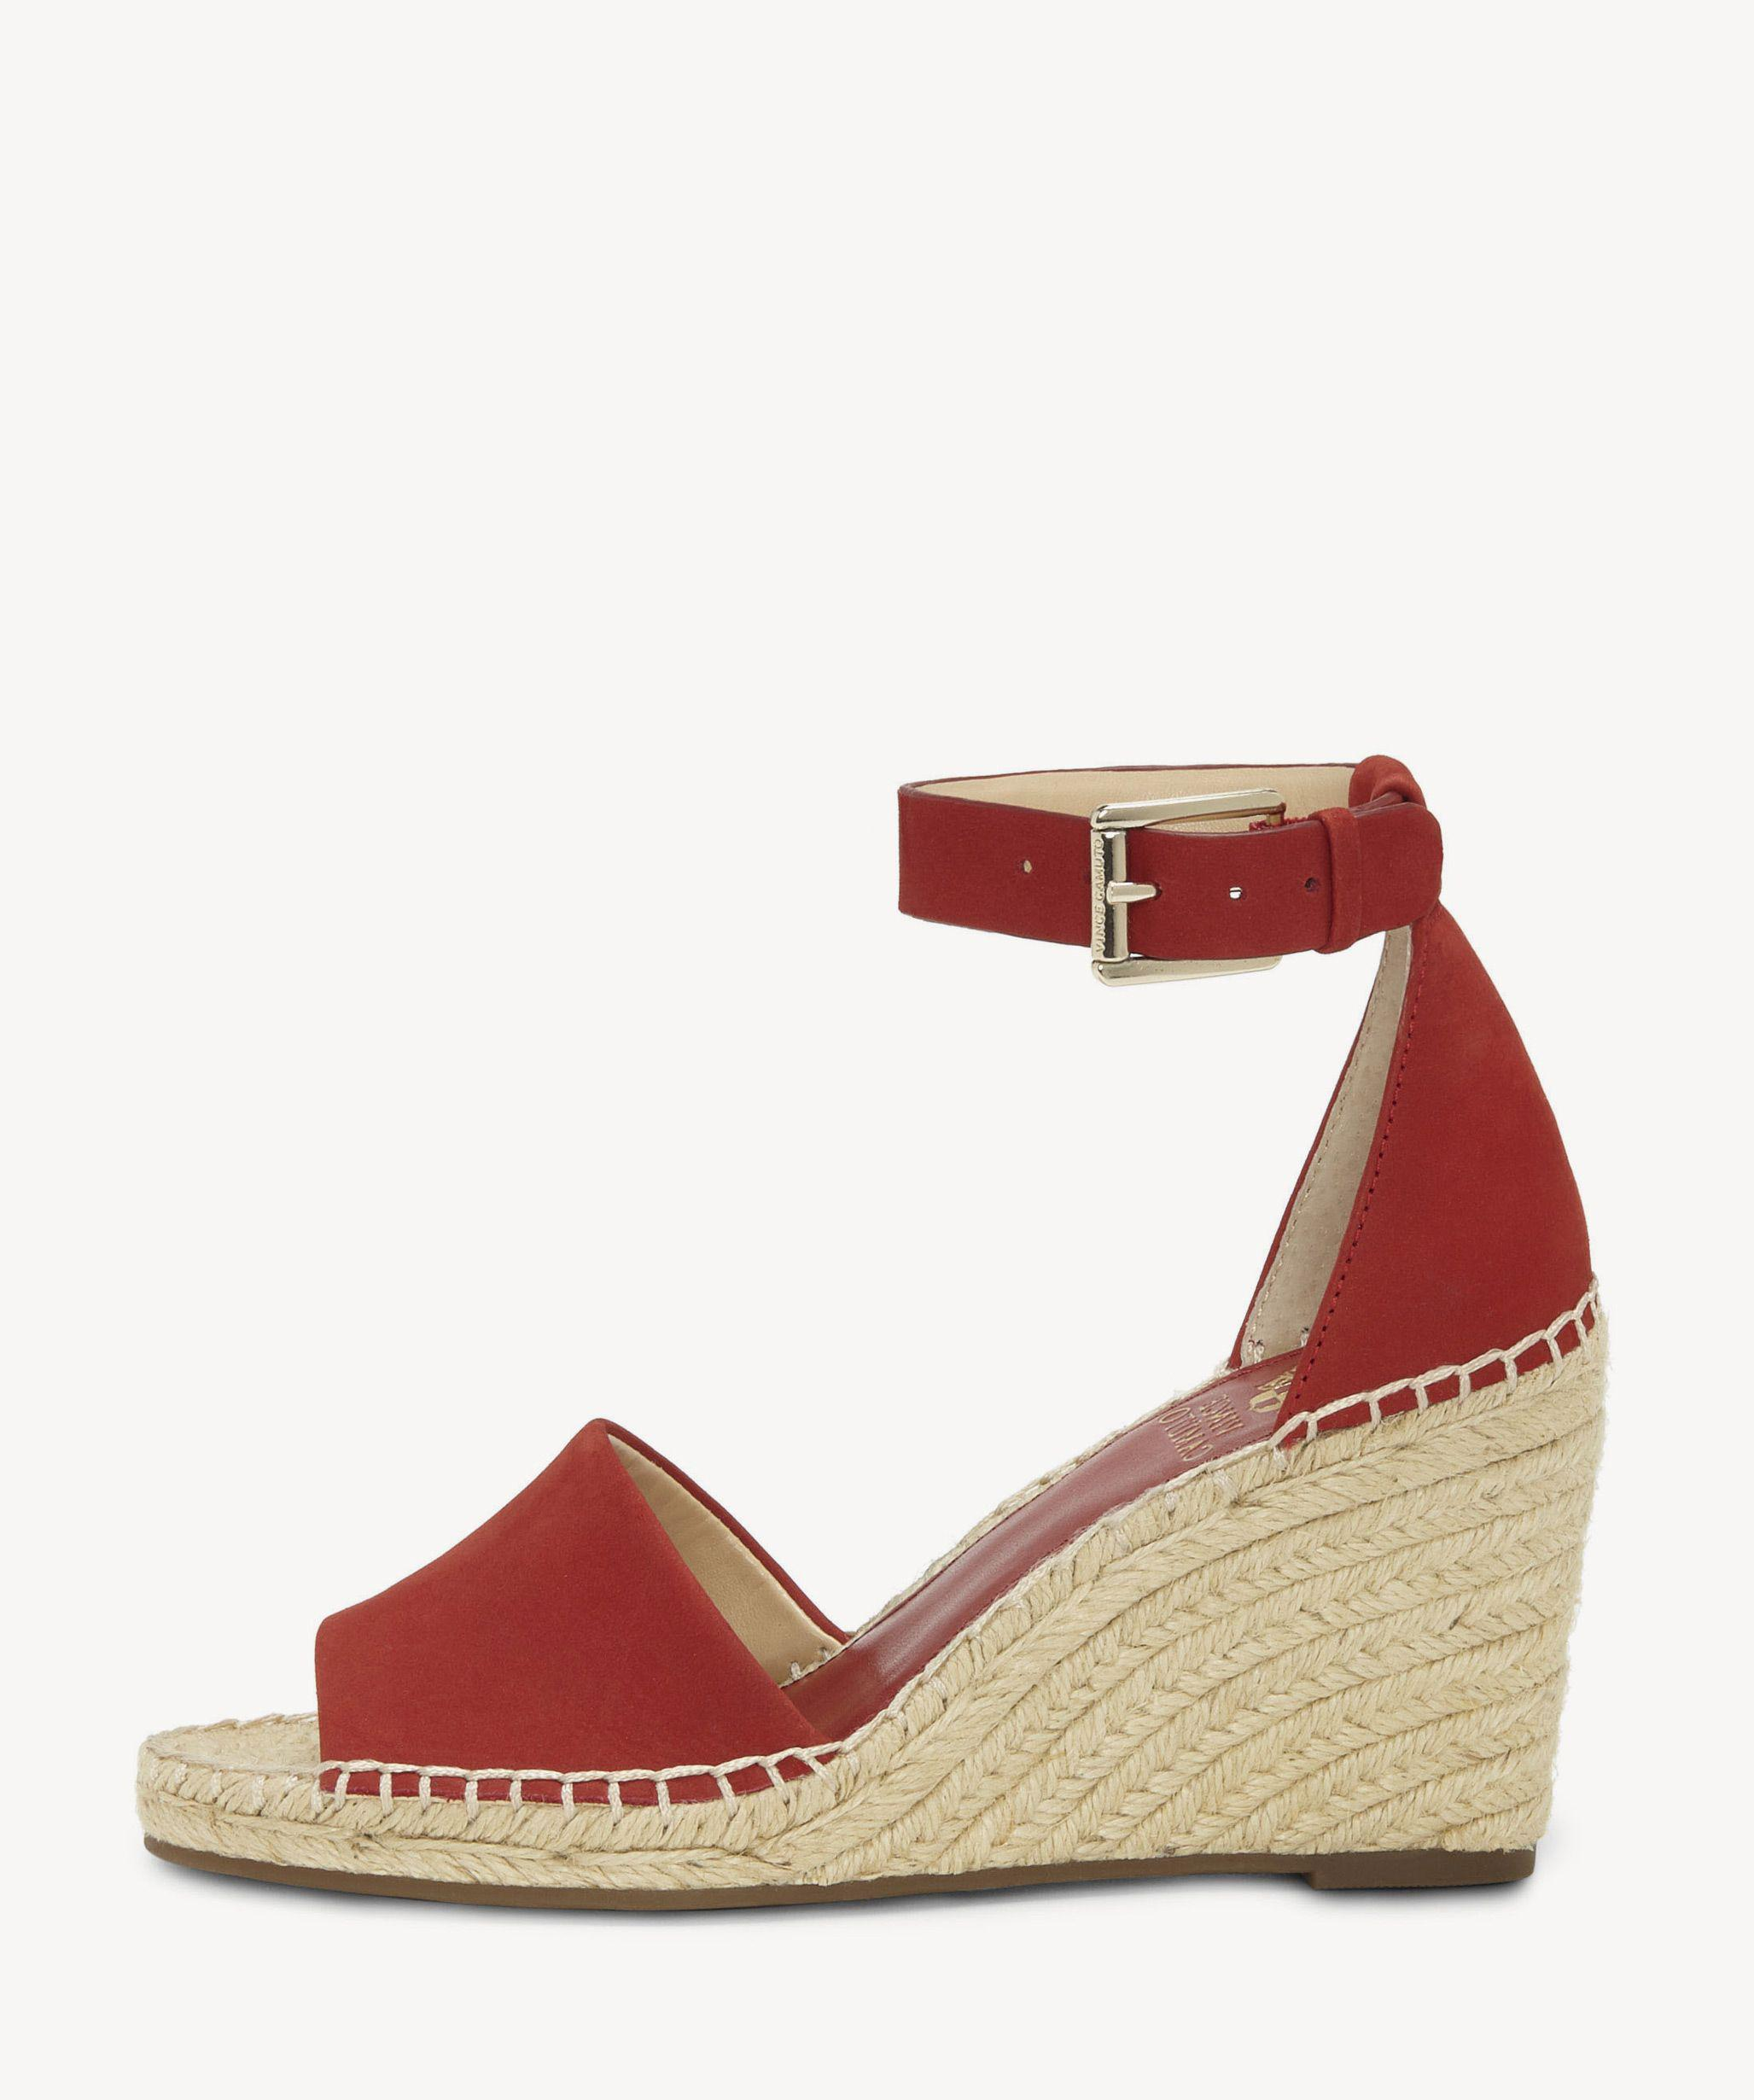 01c5ec081f Vince Camuto Leera Espadrille Wedge in Red - Save 1% - Lyst